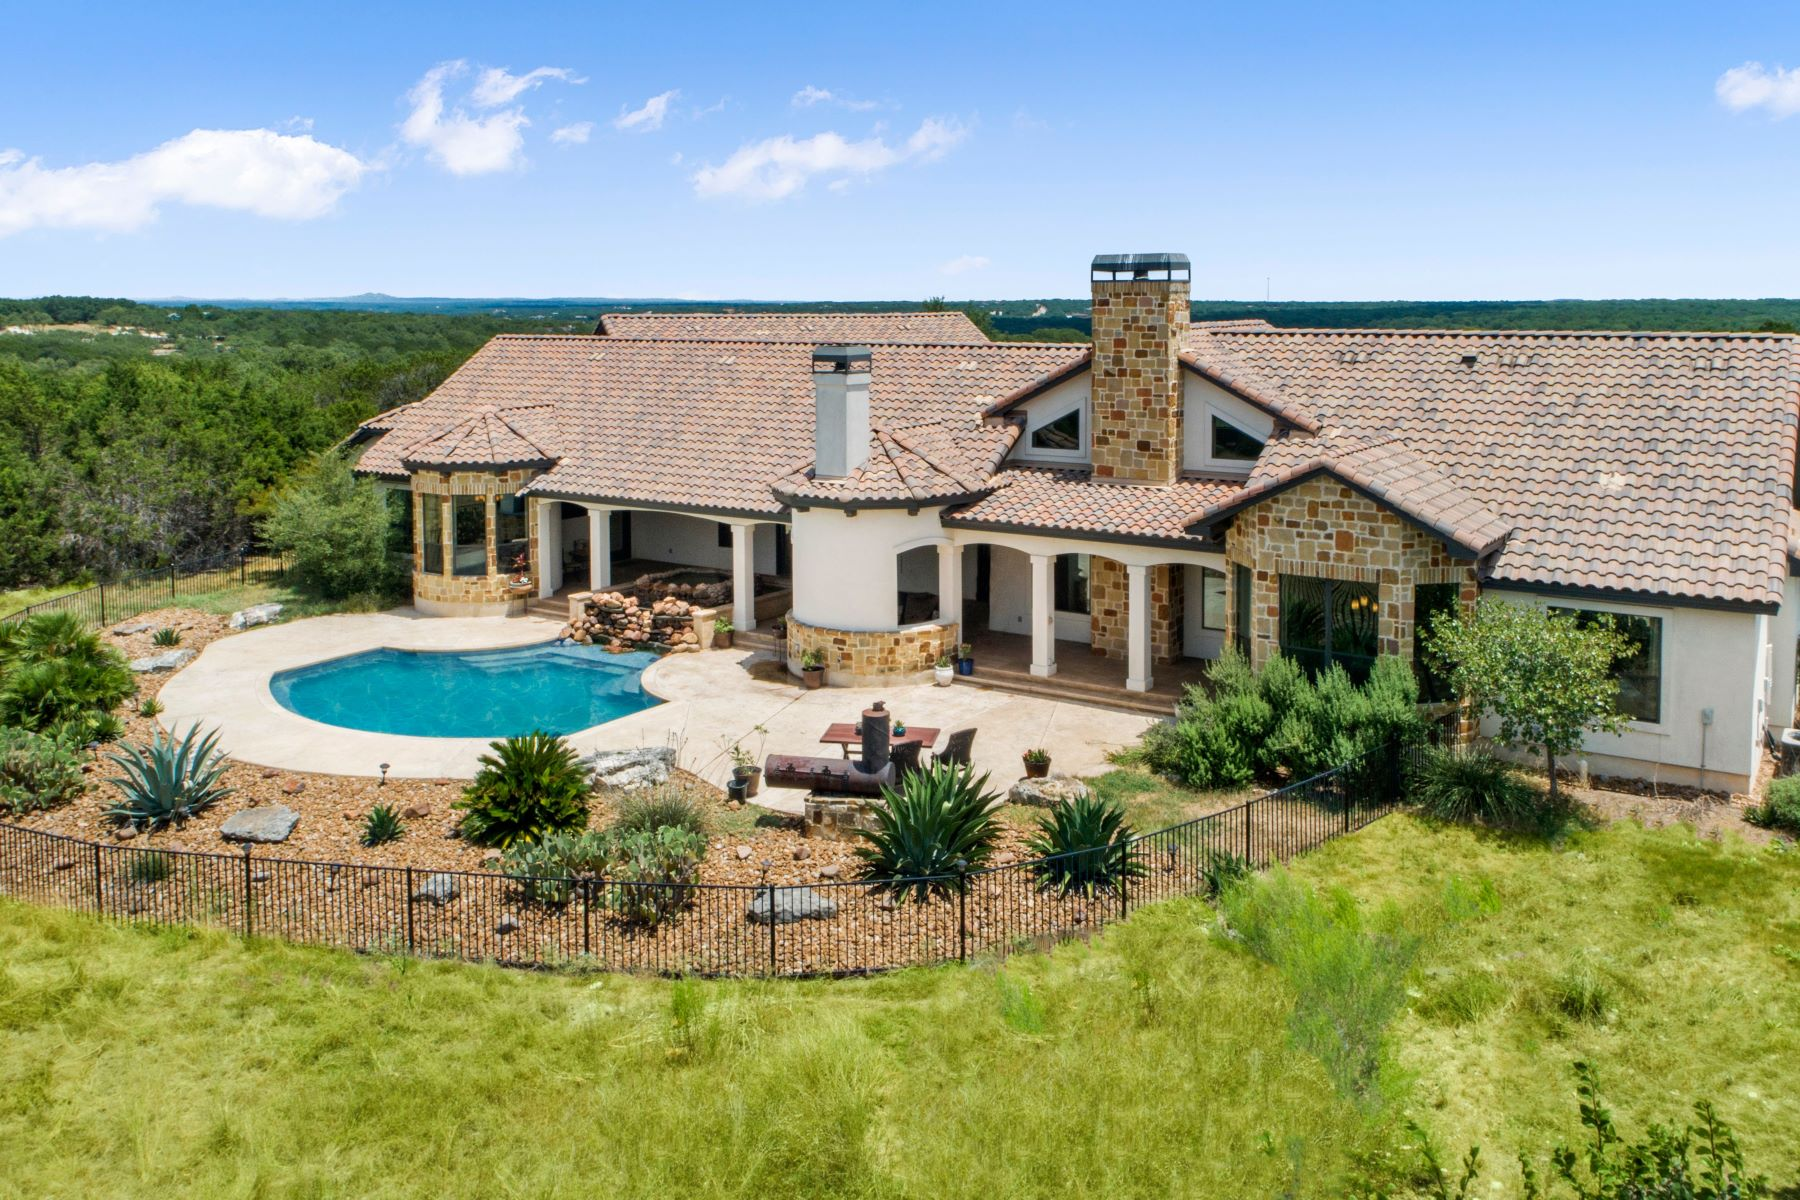 Single Family Homes for Sale at Beautiful Texas Hill Country Home 106 Northwind Boerne, Texas 78006 United States